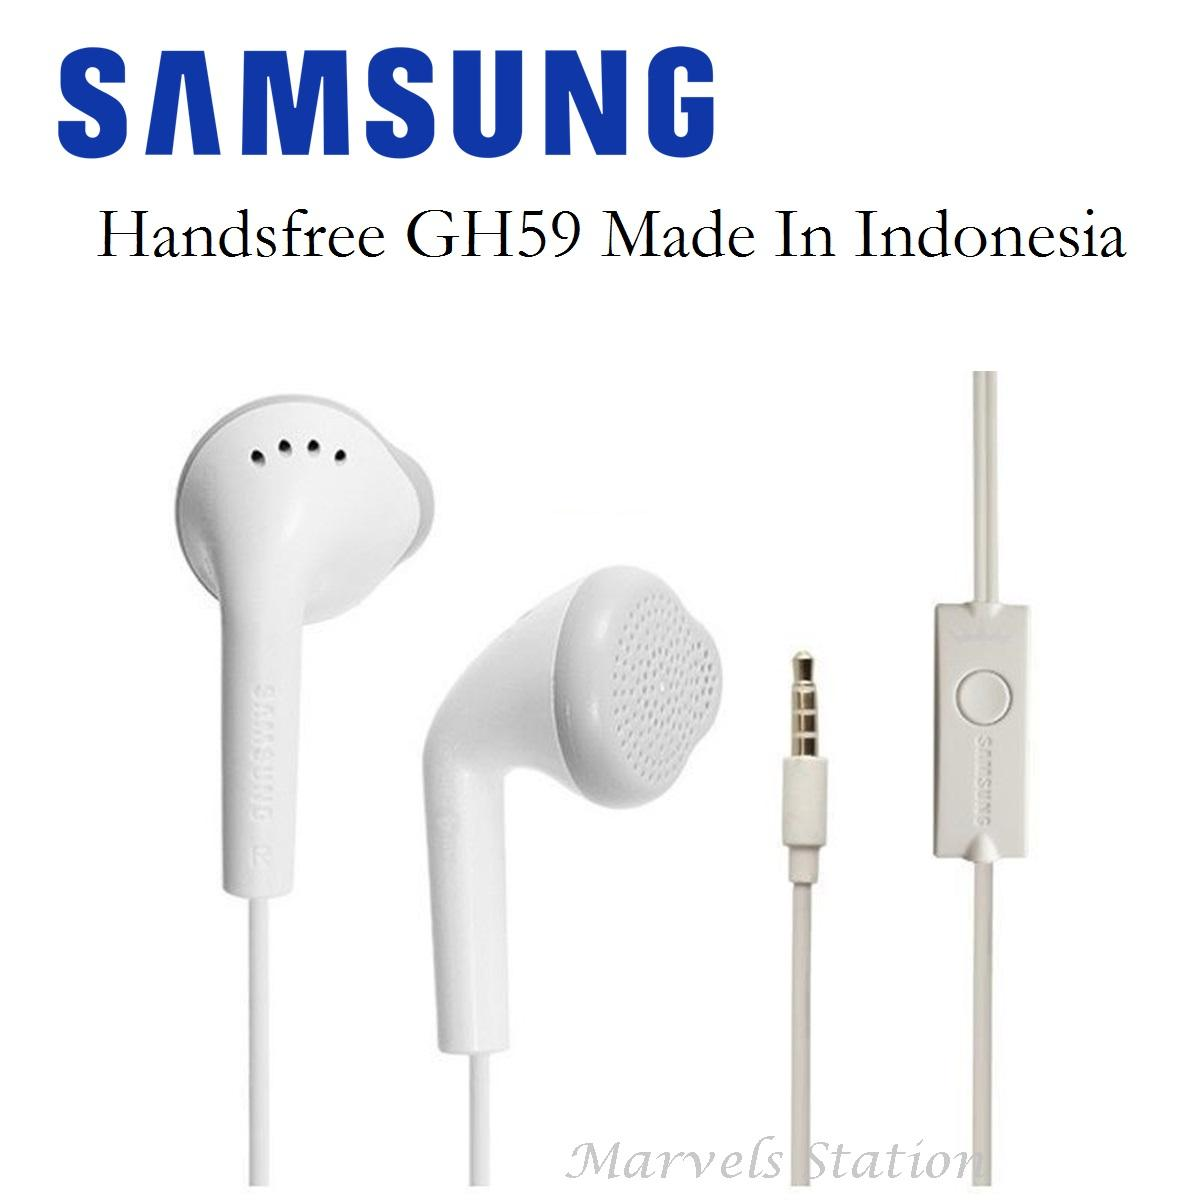 Samsung Handsfree GH59 / Headset J1 Made In Indonesia - Original